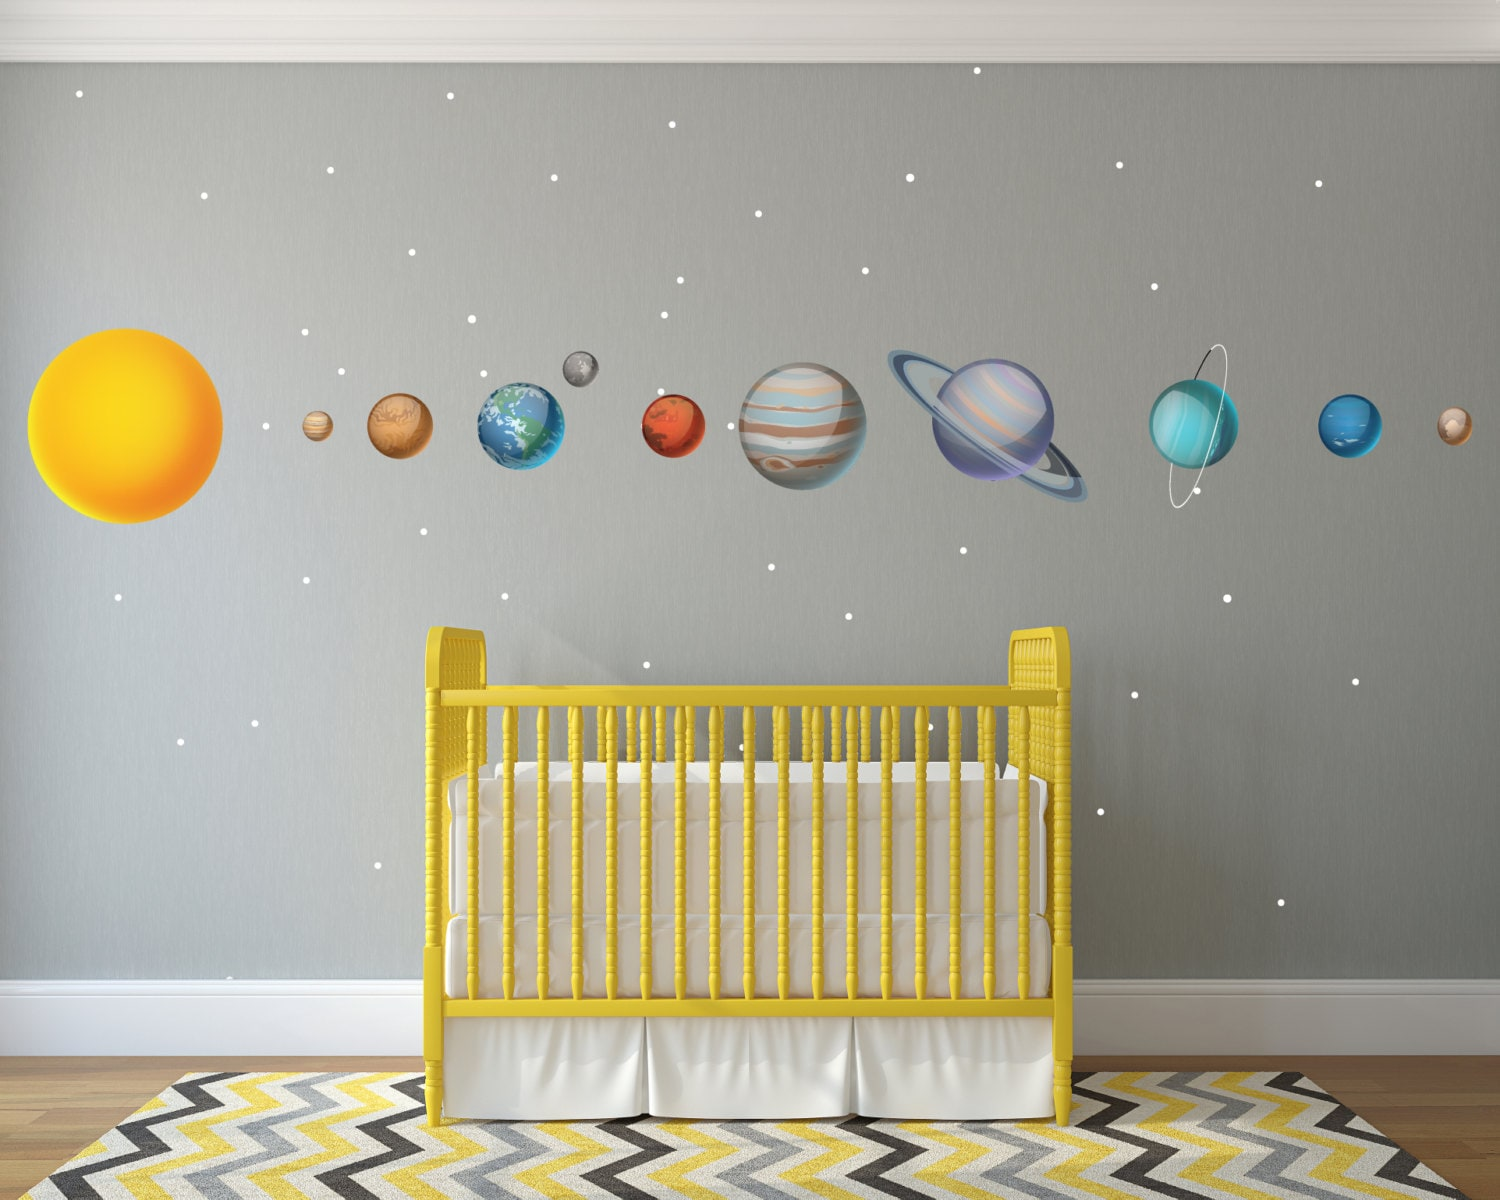 Solar System Wall Sticker Decorations